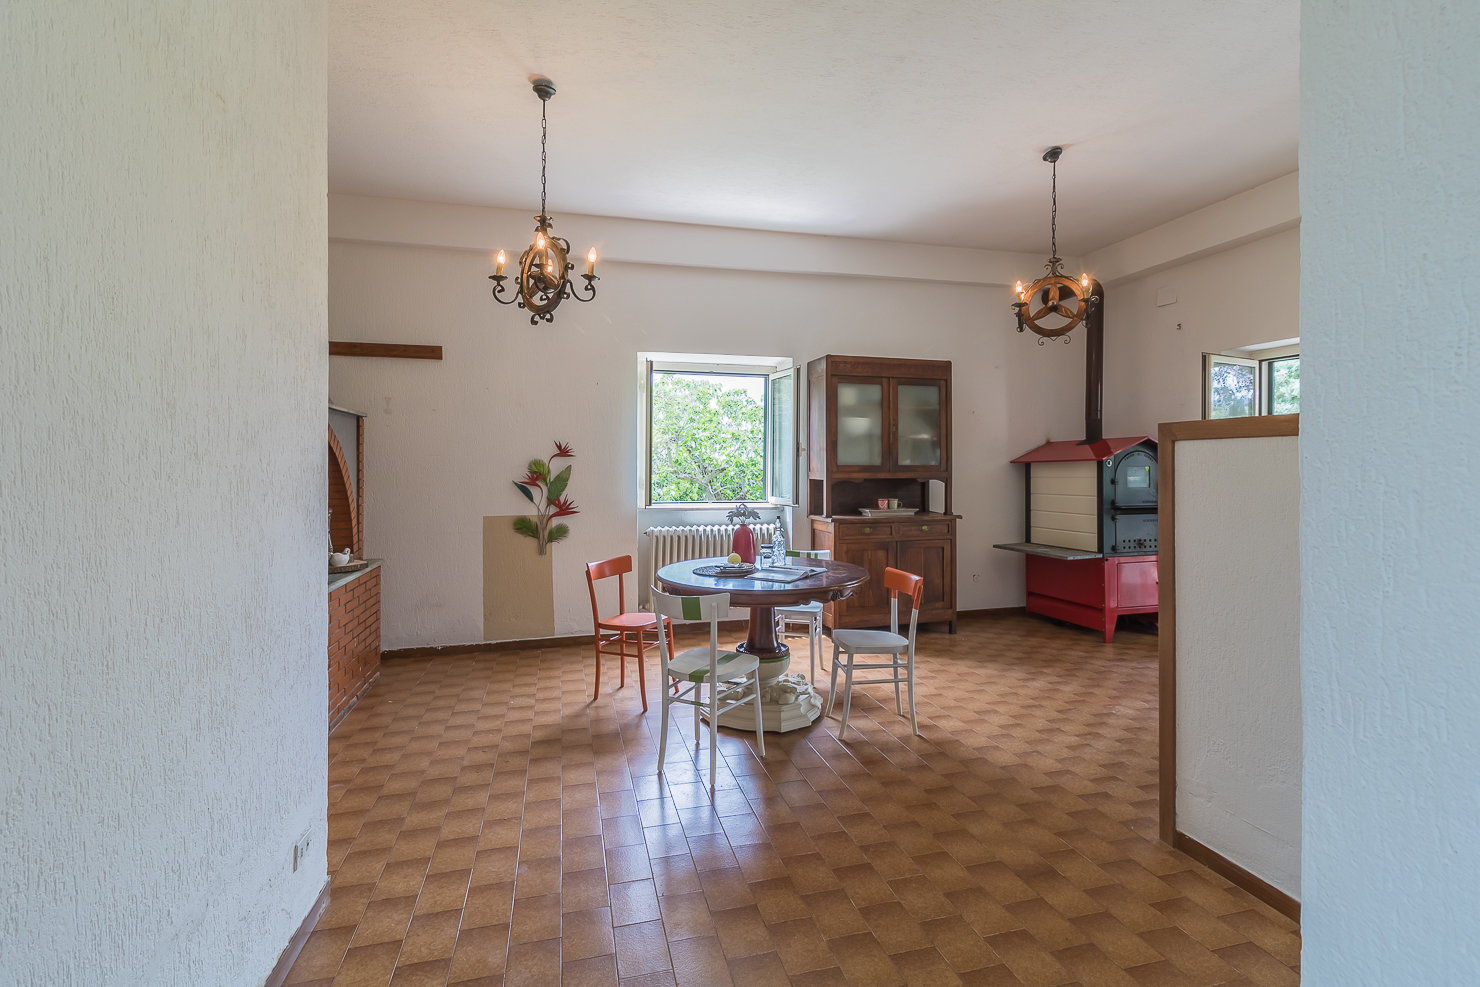 THERMAL SIDE: Beautiful single villa with outbuilding and land in a hilly area